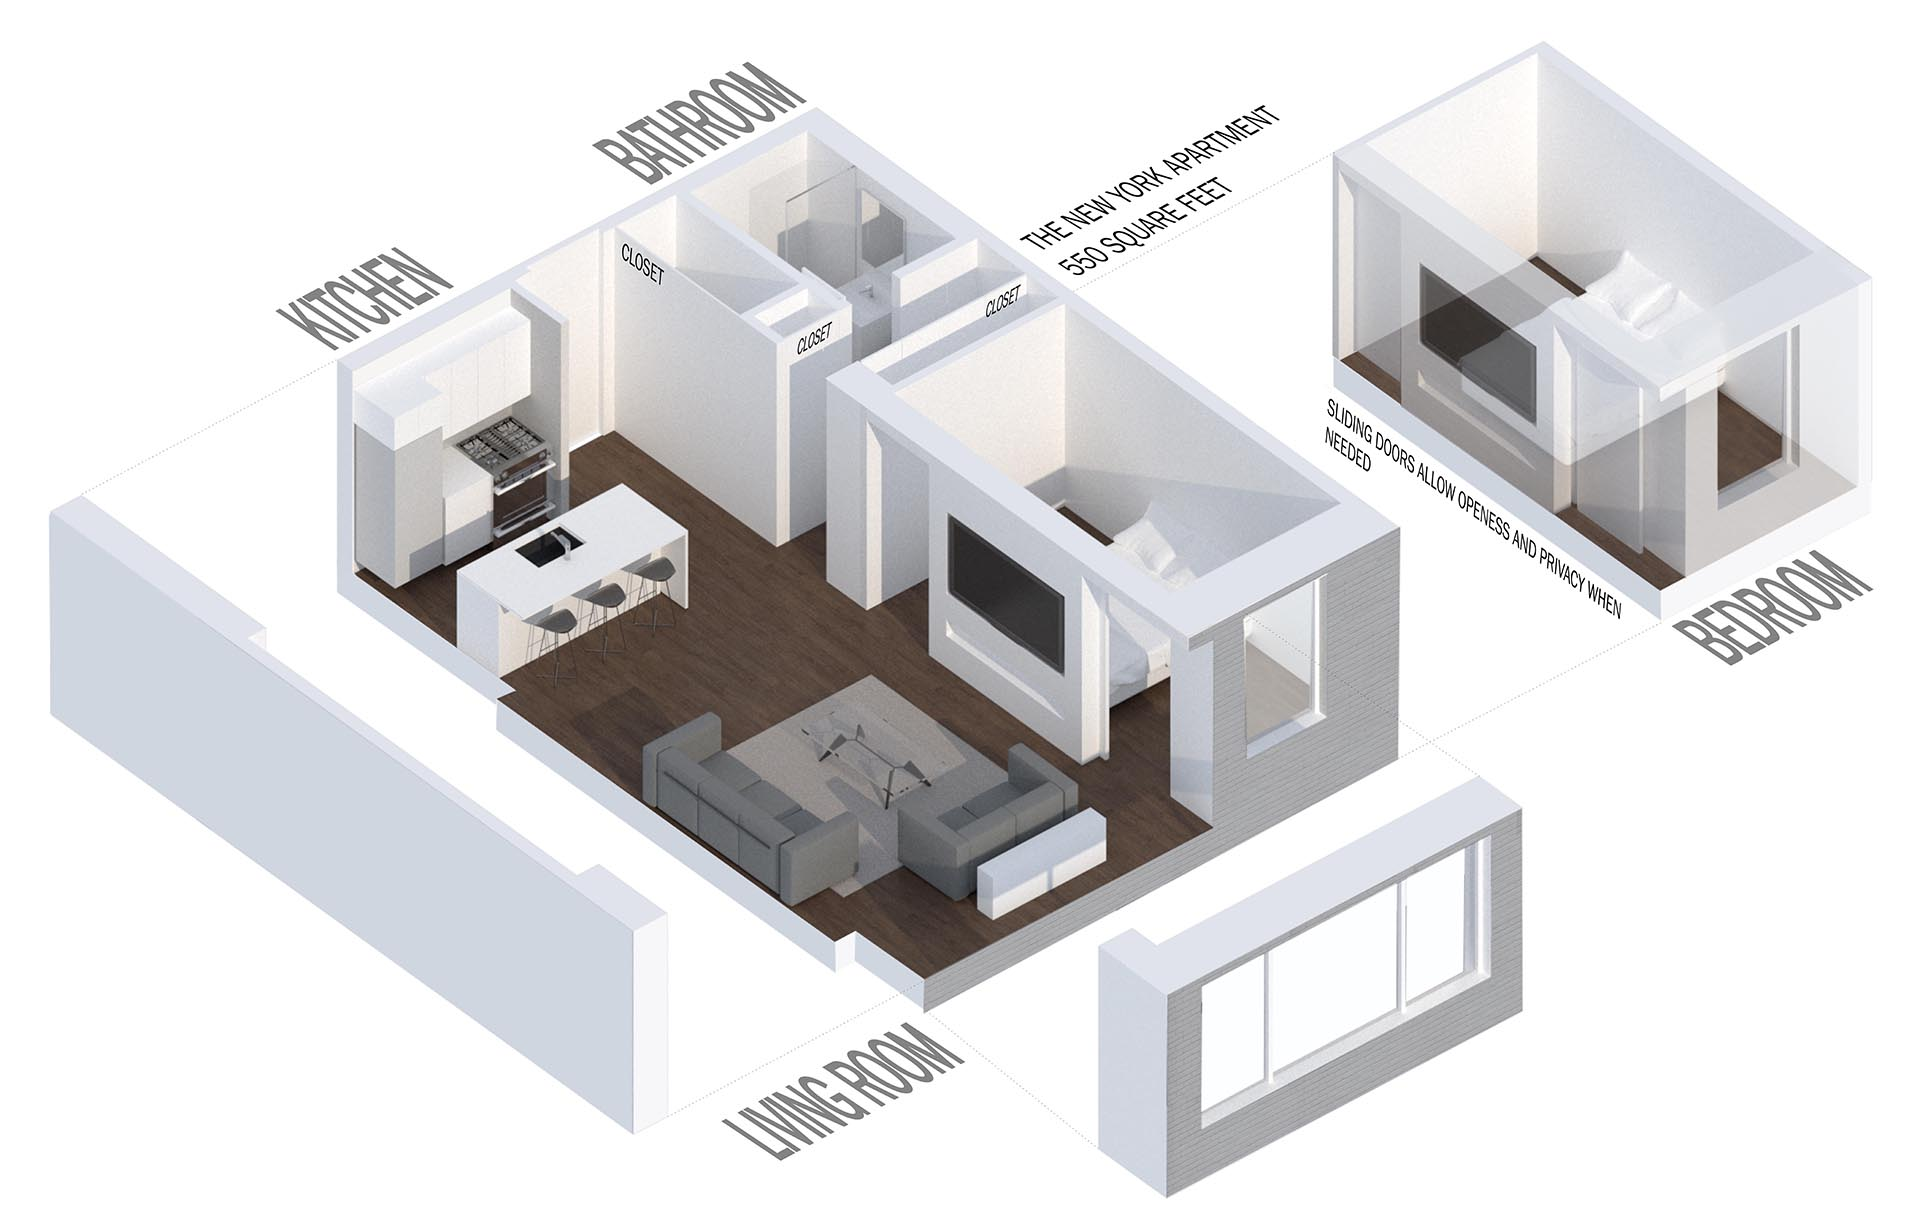 A small apartment with a single bedroom.